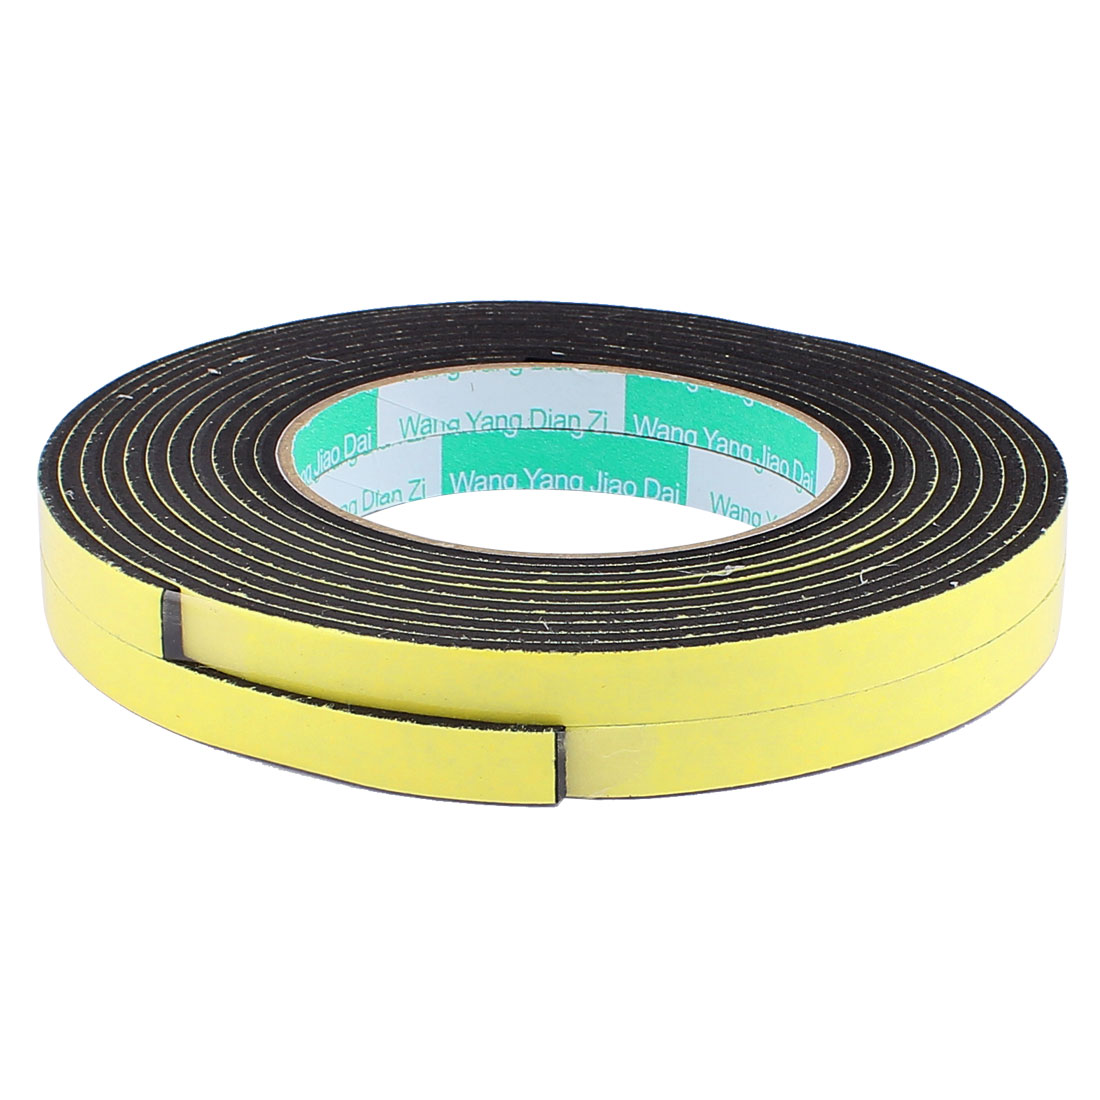 2 Pcs 1CM Width 4M Length 3MM Thick Single Sided Sealing Shockproof Sponge Tape